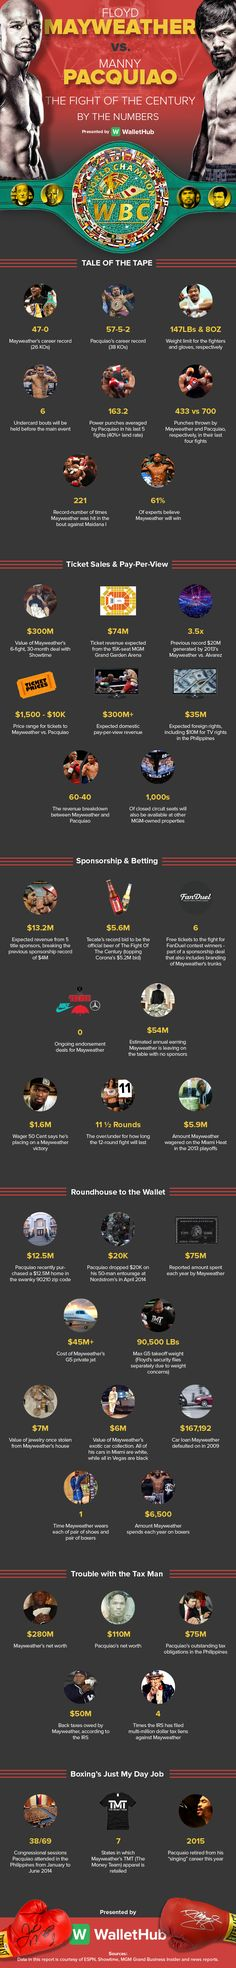 mayweather-vs-pacquiao-infographic